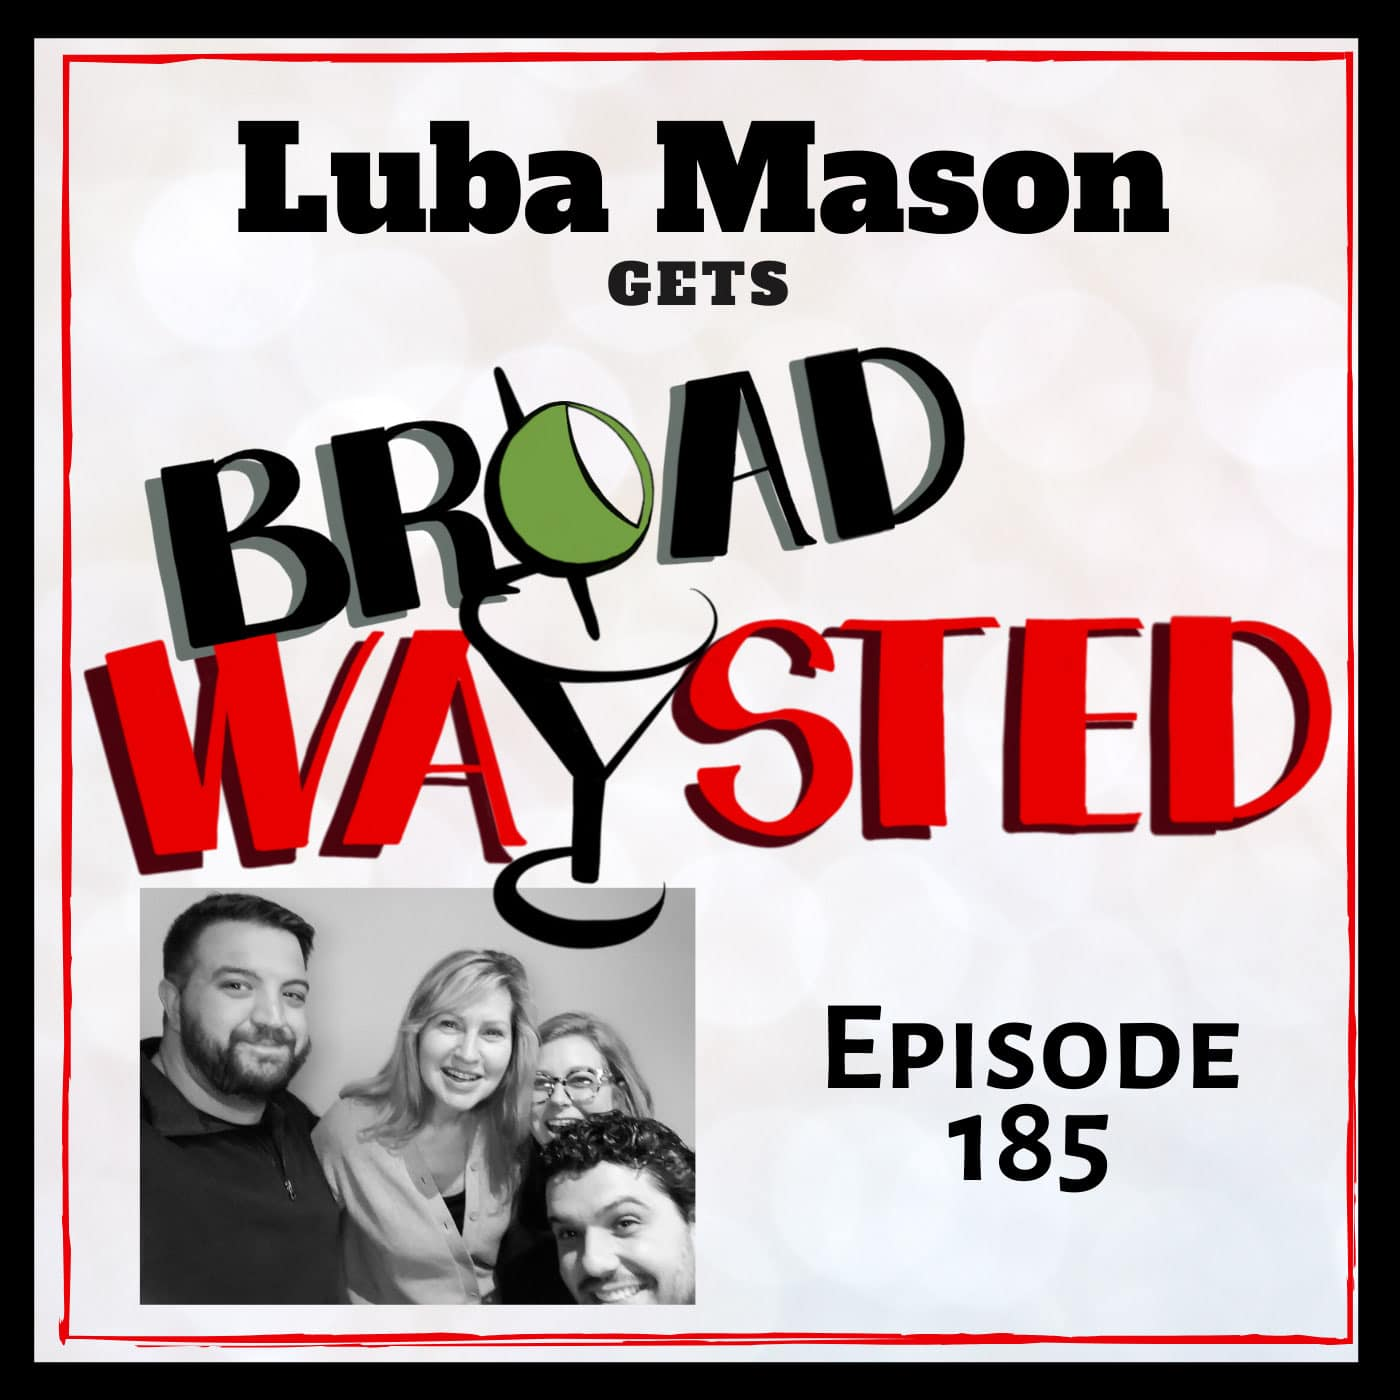 Broadwaysted Episode 185 Luba Mason